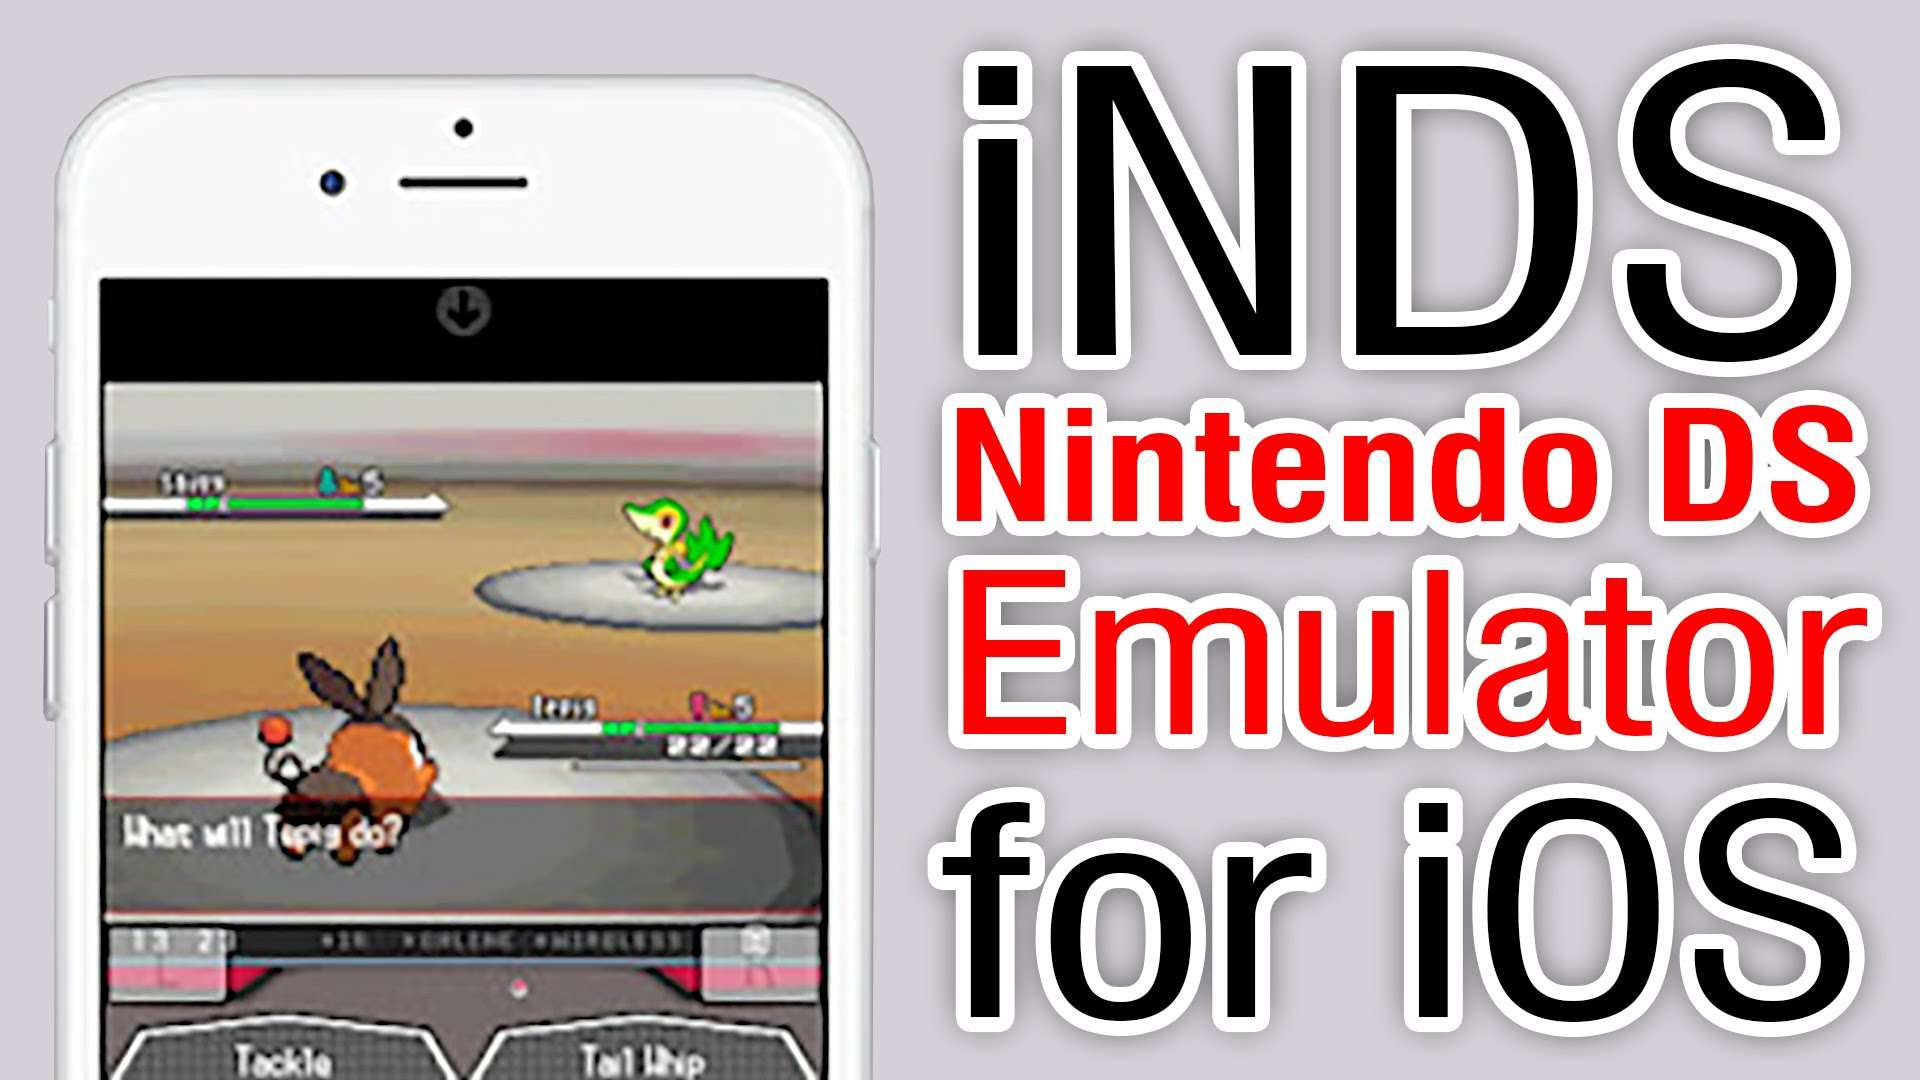 ds emulator for iphone roms nds nintendo ds iphone 6206